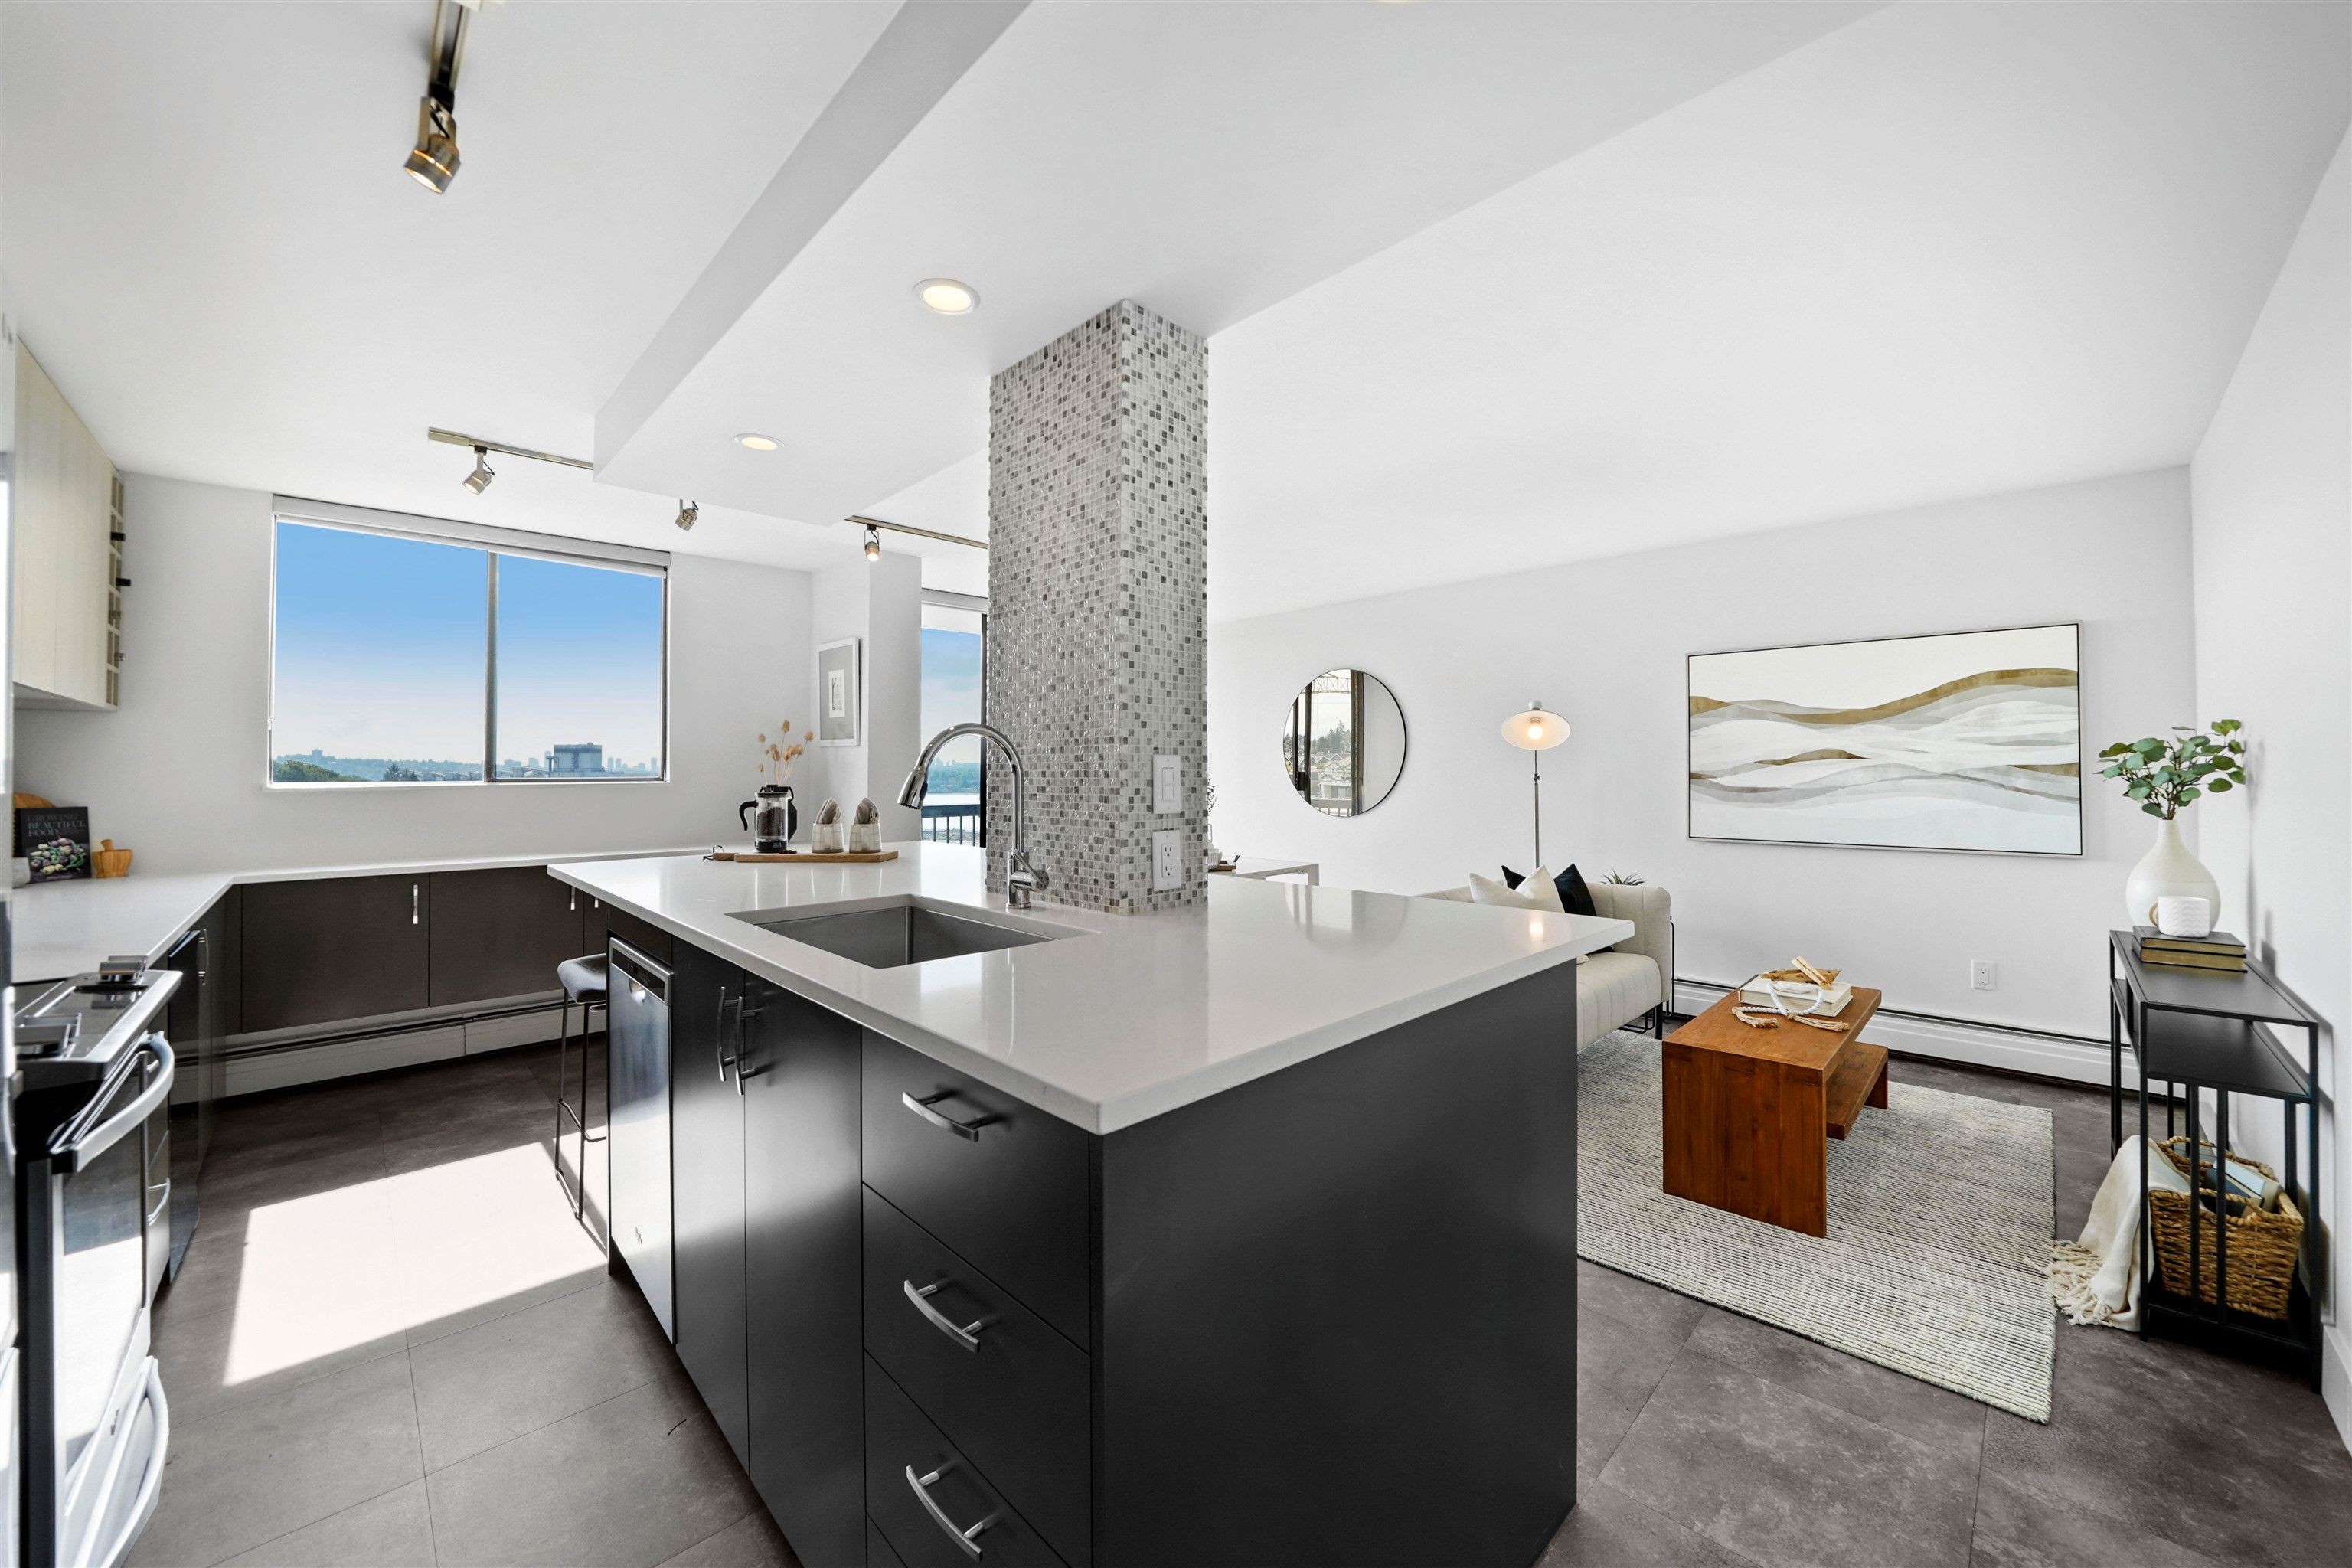 """Main Photo: 907 145 ST. GEORGES Avenue in North Vancouver: Lower Lonsdale Condo for sale in """"Talisman Tower"""" : MLS®# R2609306"""